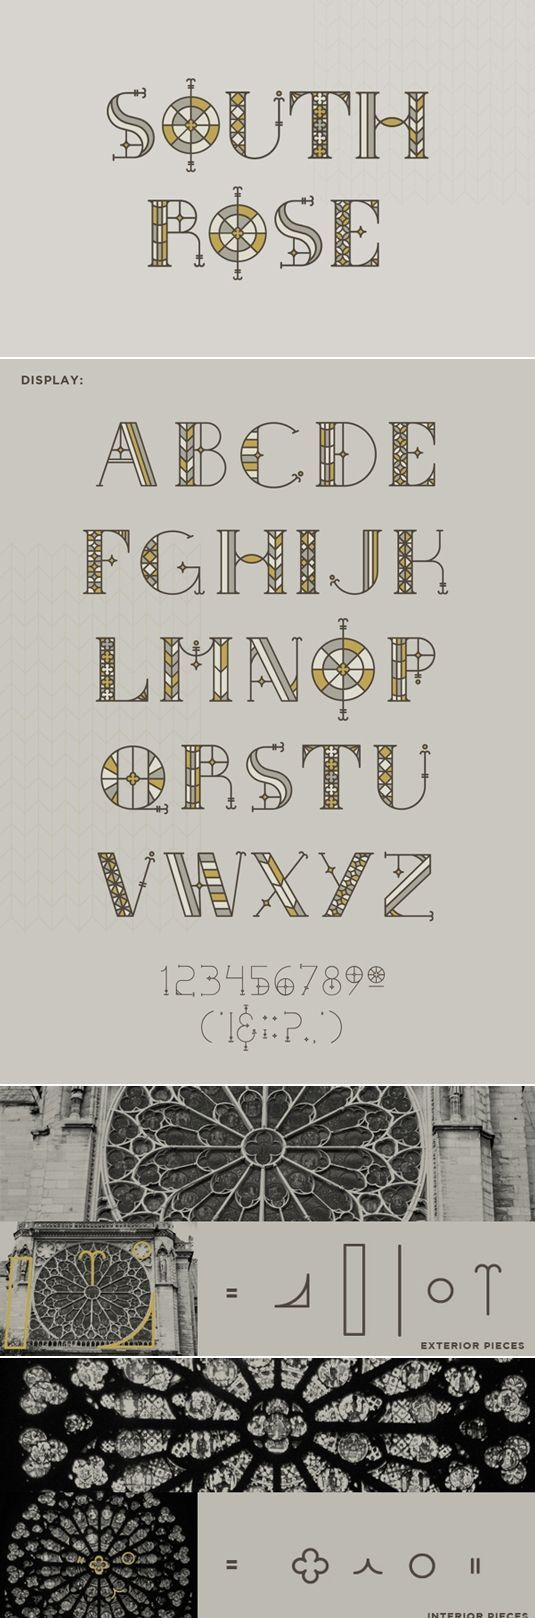 I love how they created this font from motifs within this decorative window design